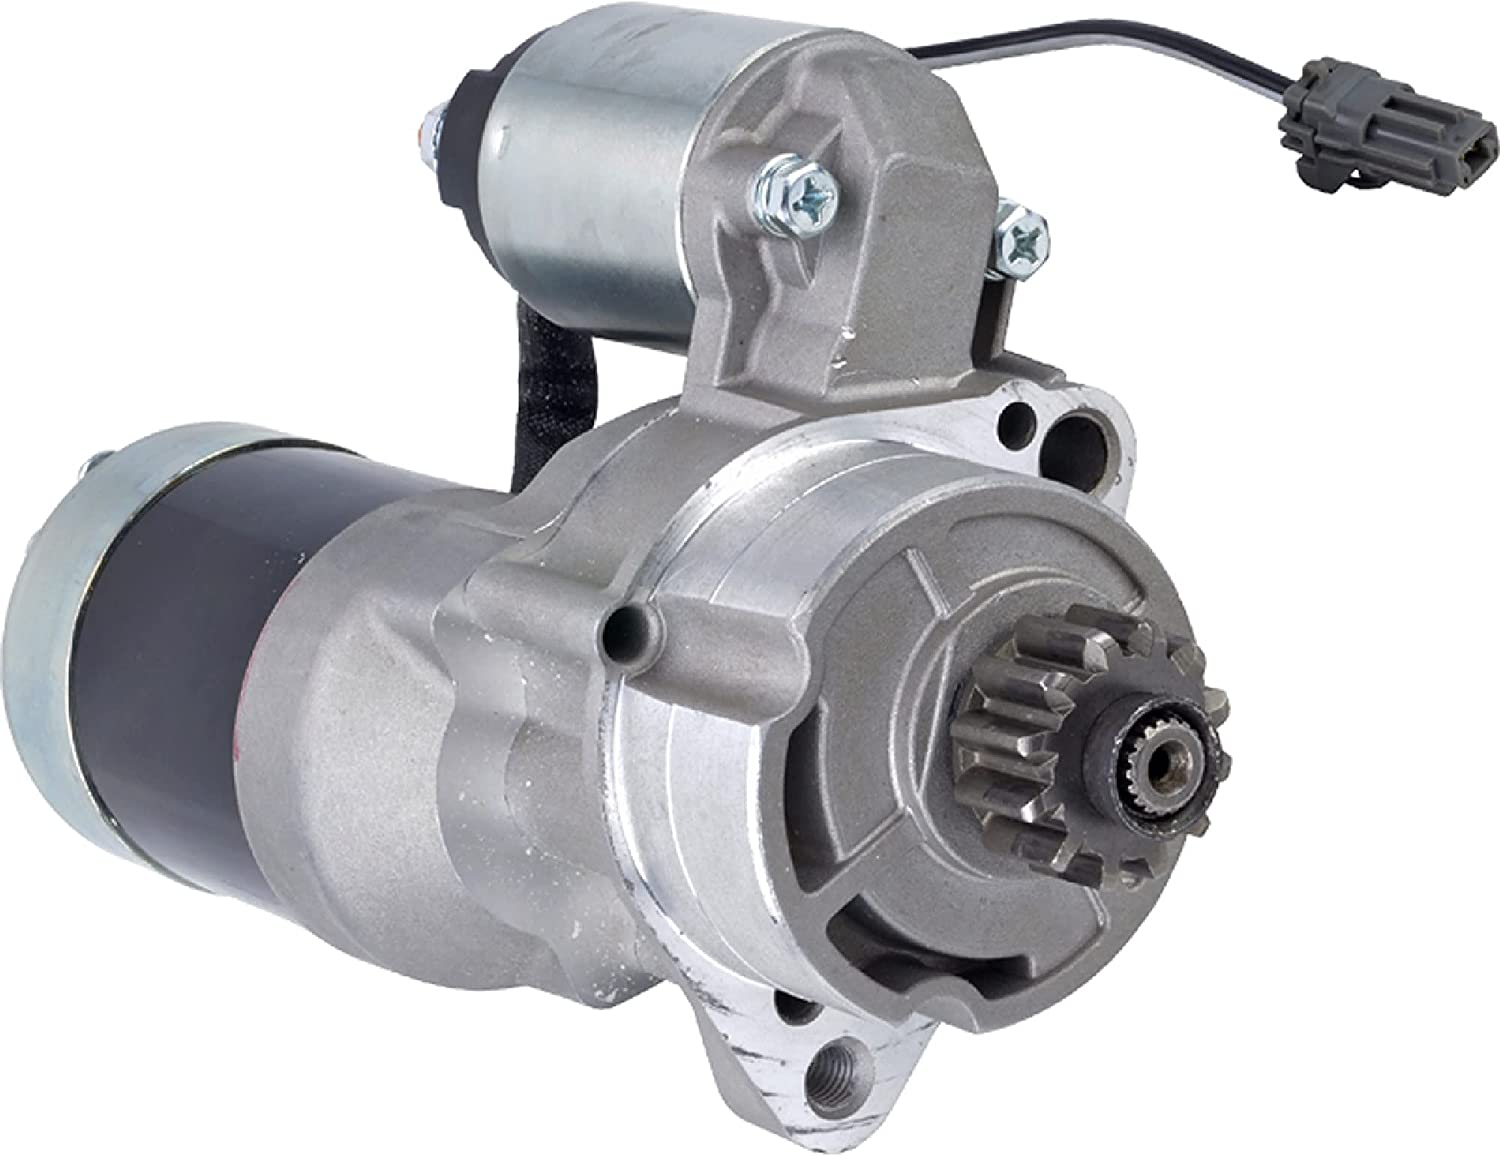 DB Electrical New Starter with Indianapolis Mall 410-48324 Compatible NEW before selling ☆ Replacement